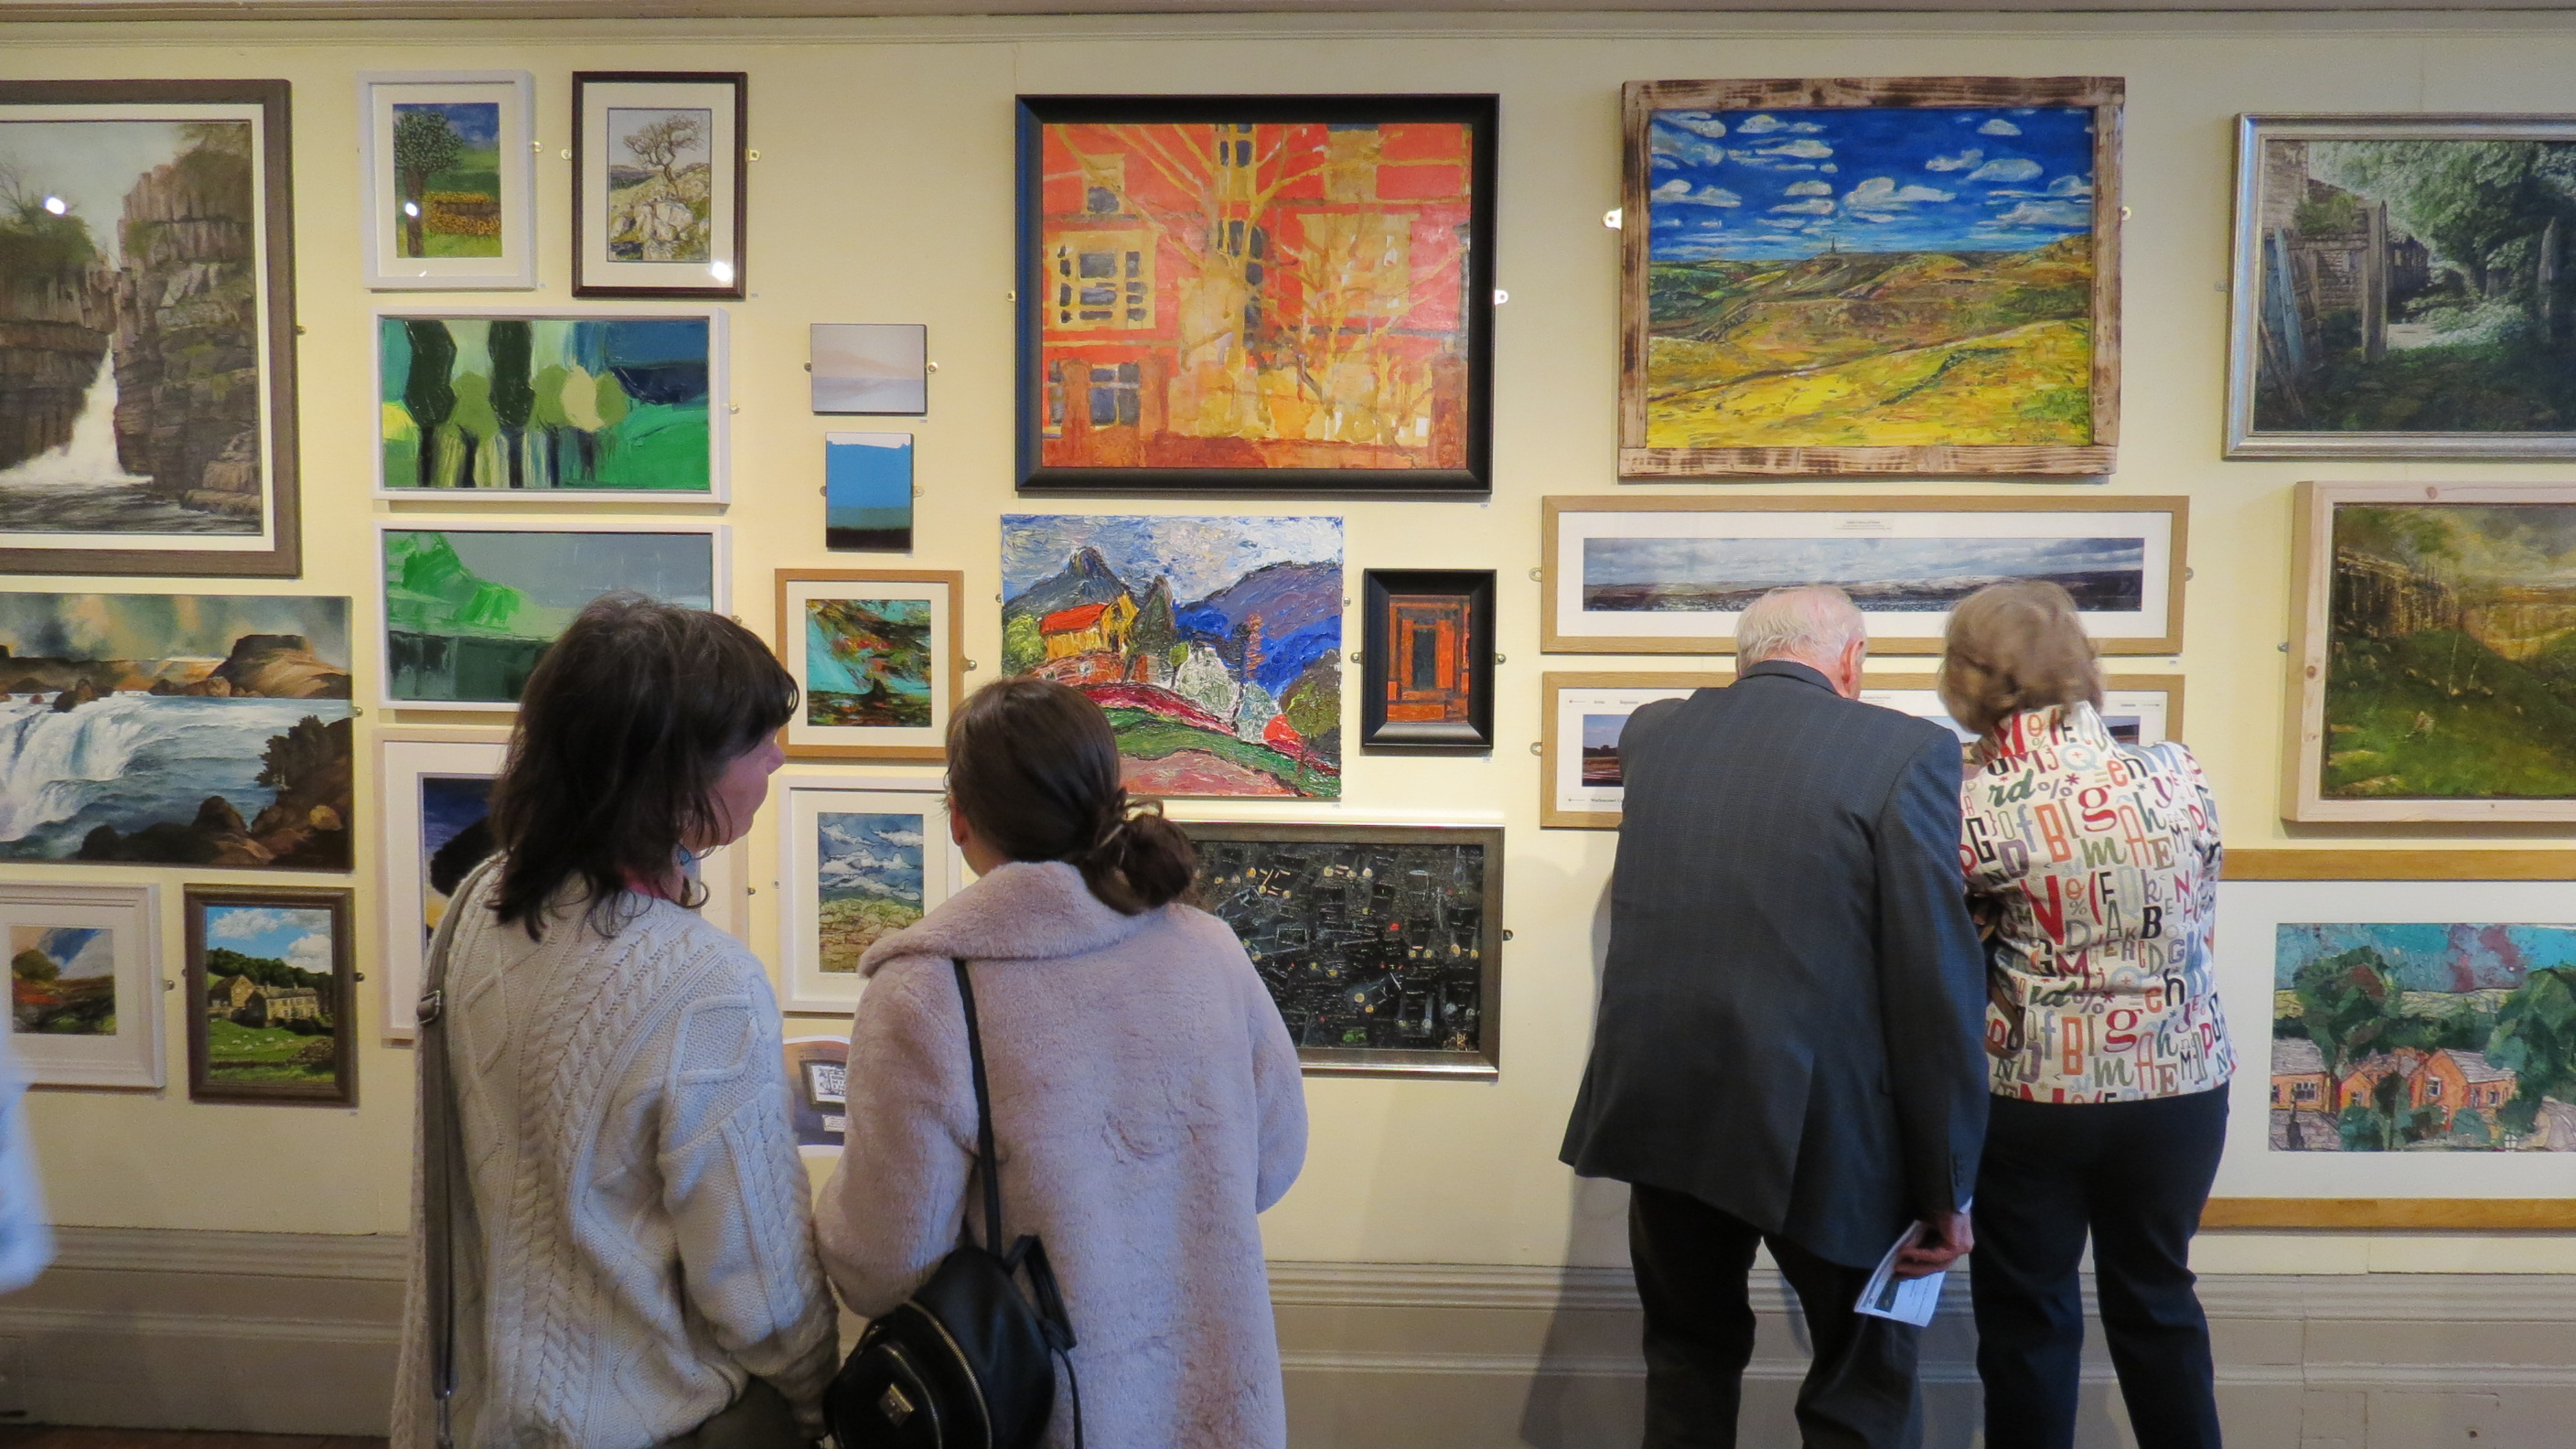 Calderdale Open art 2018